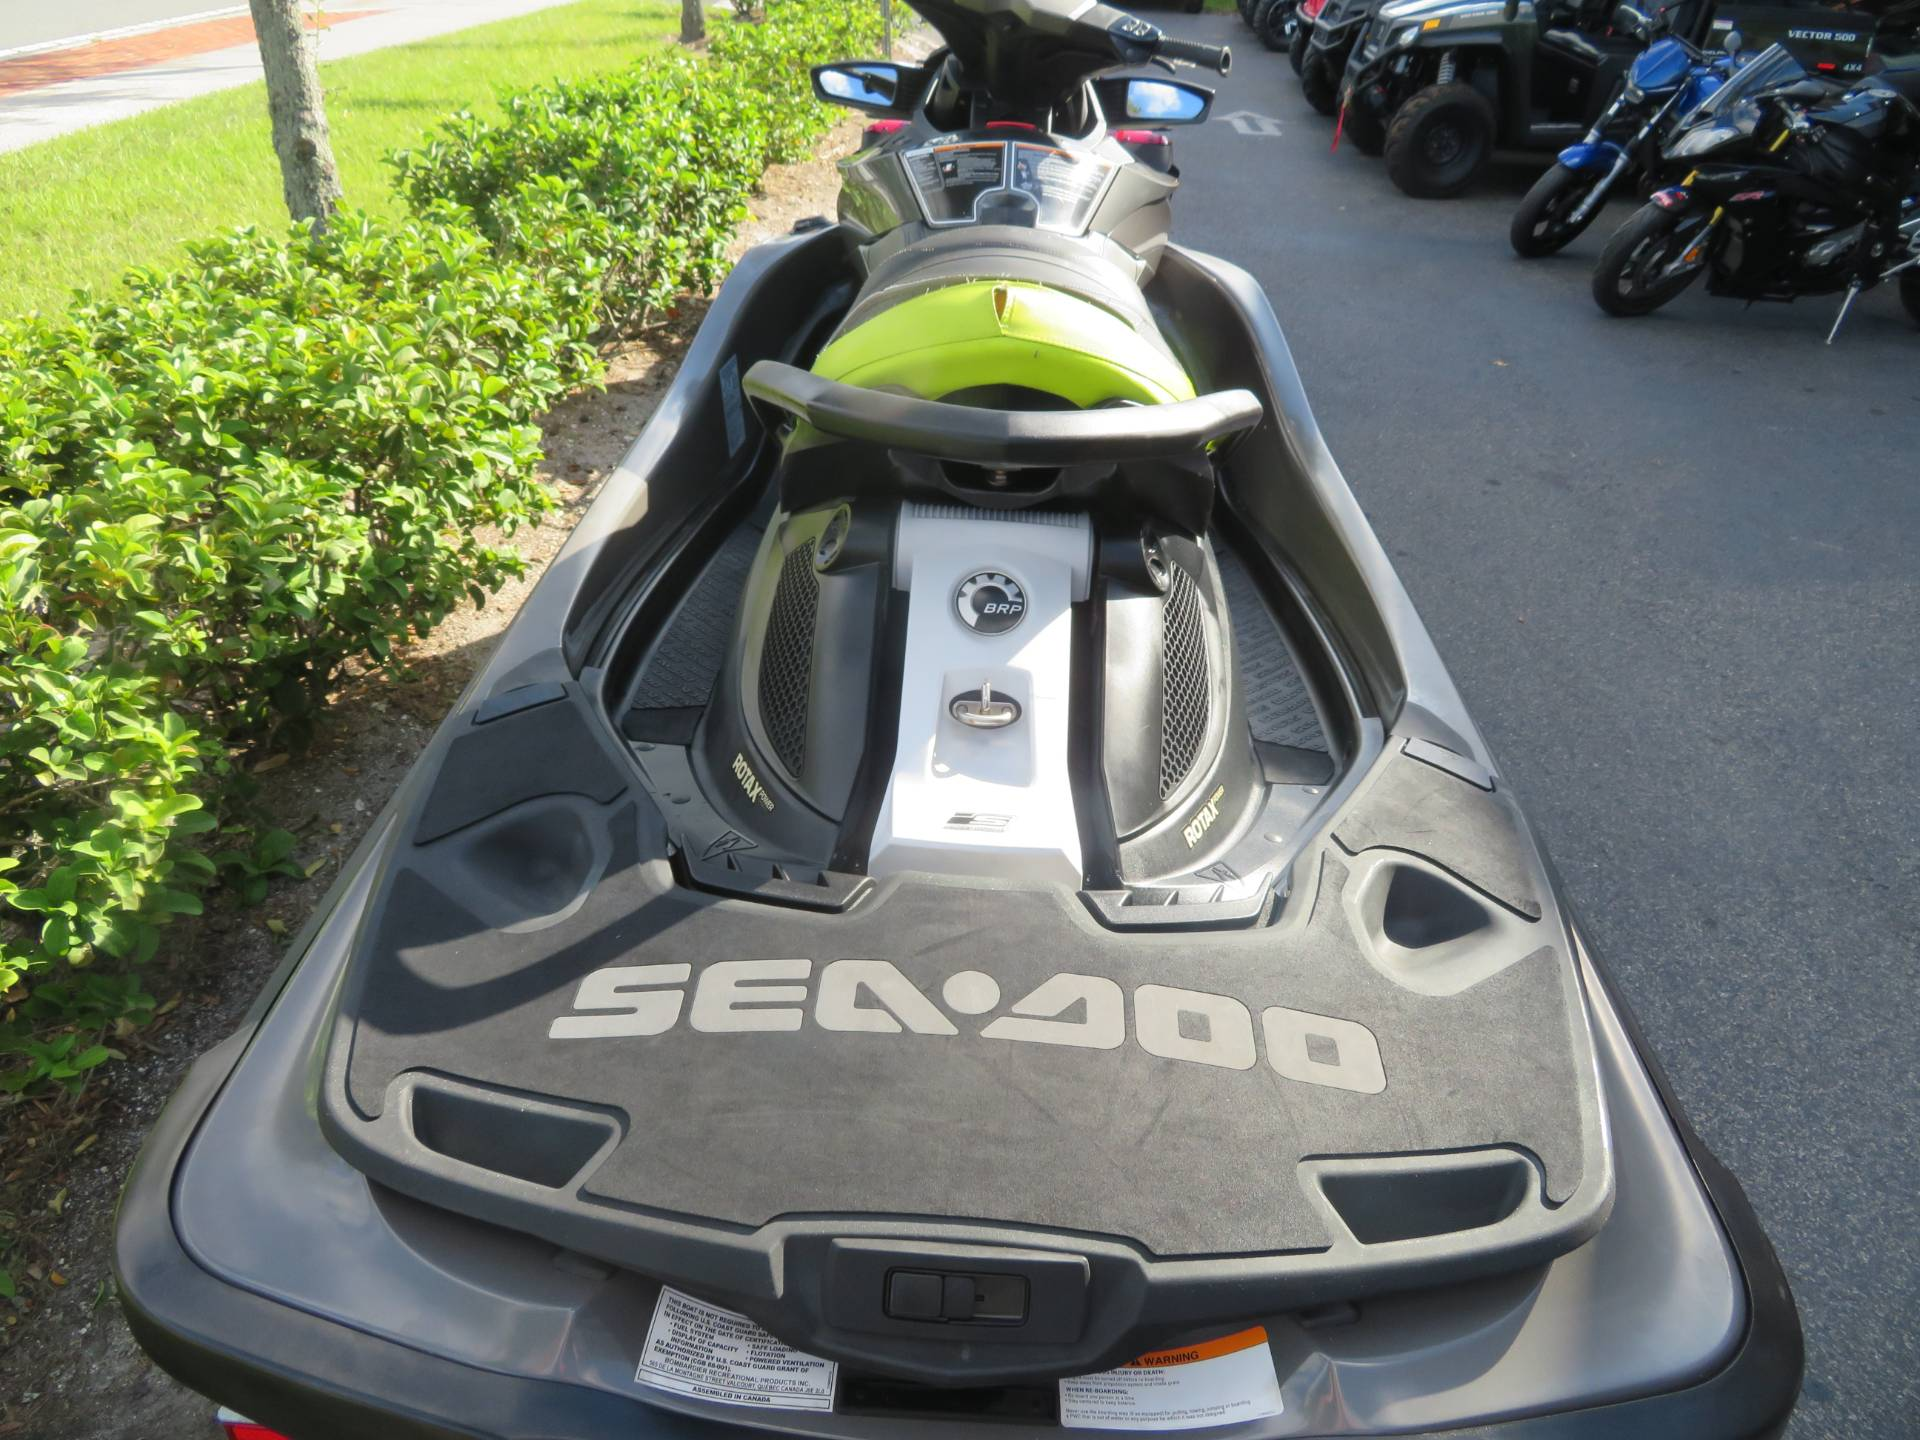 2015 Sea-Doo GTX Limited iS™ 260 in Sanford, Florida - Photo 20